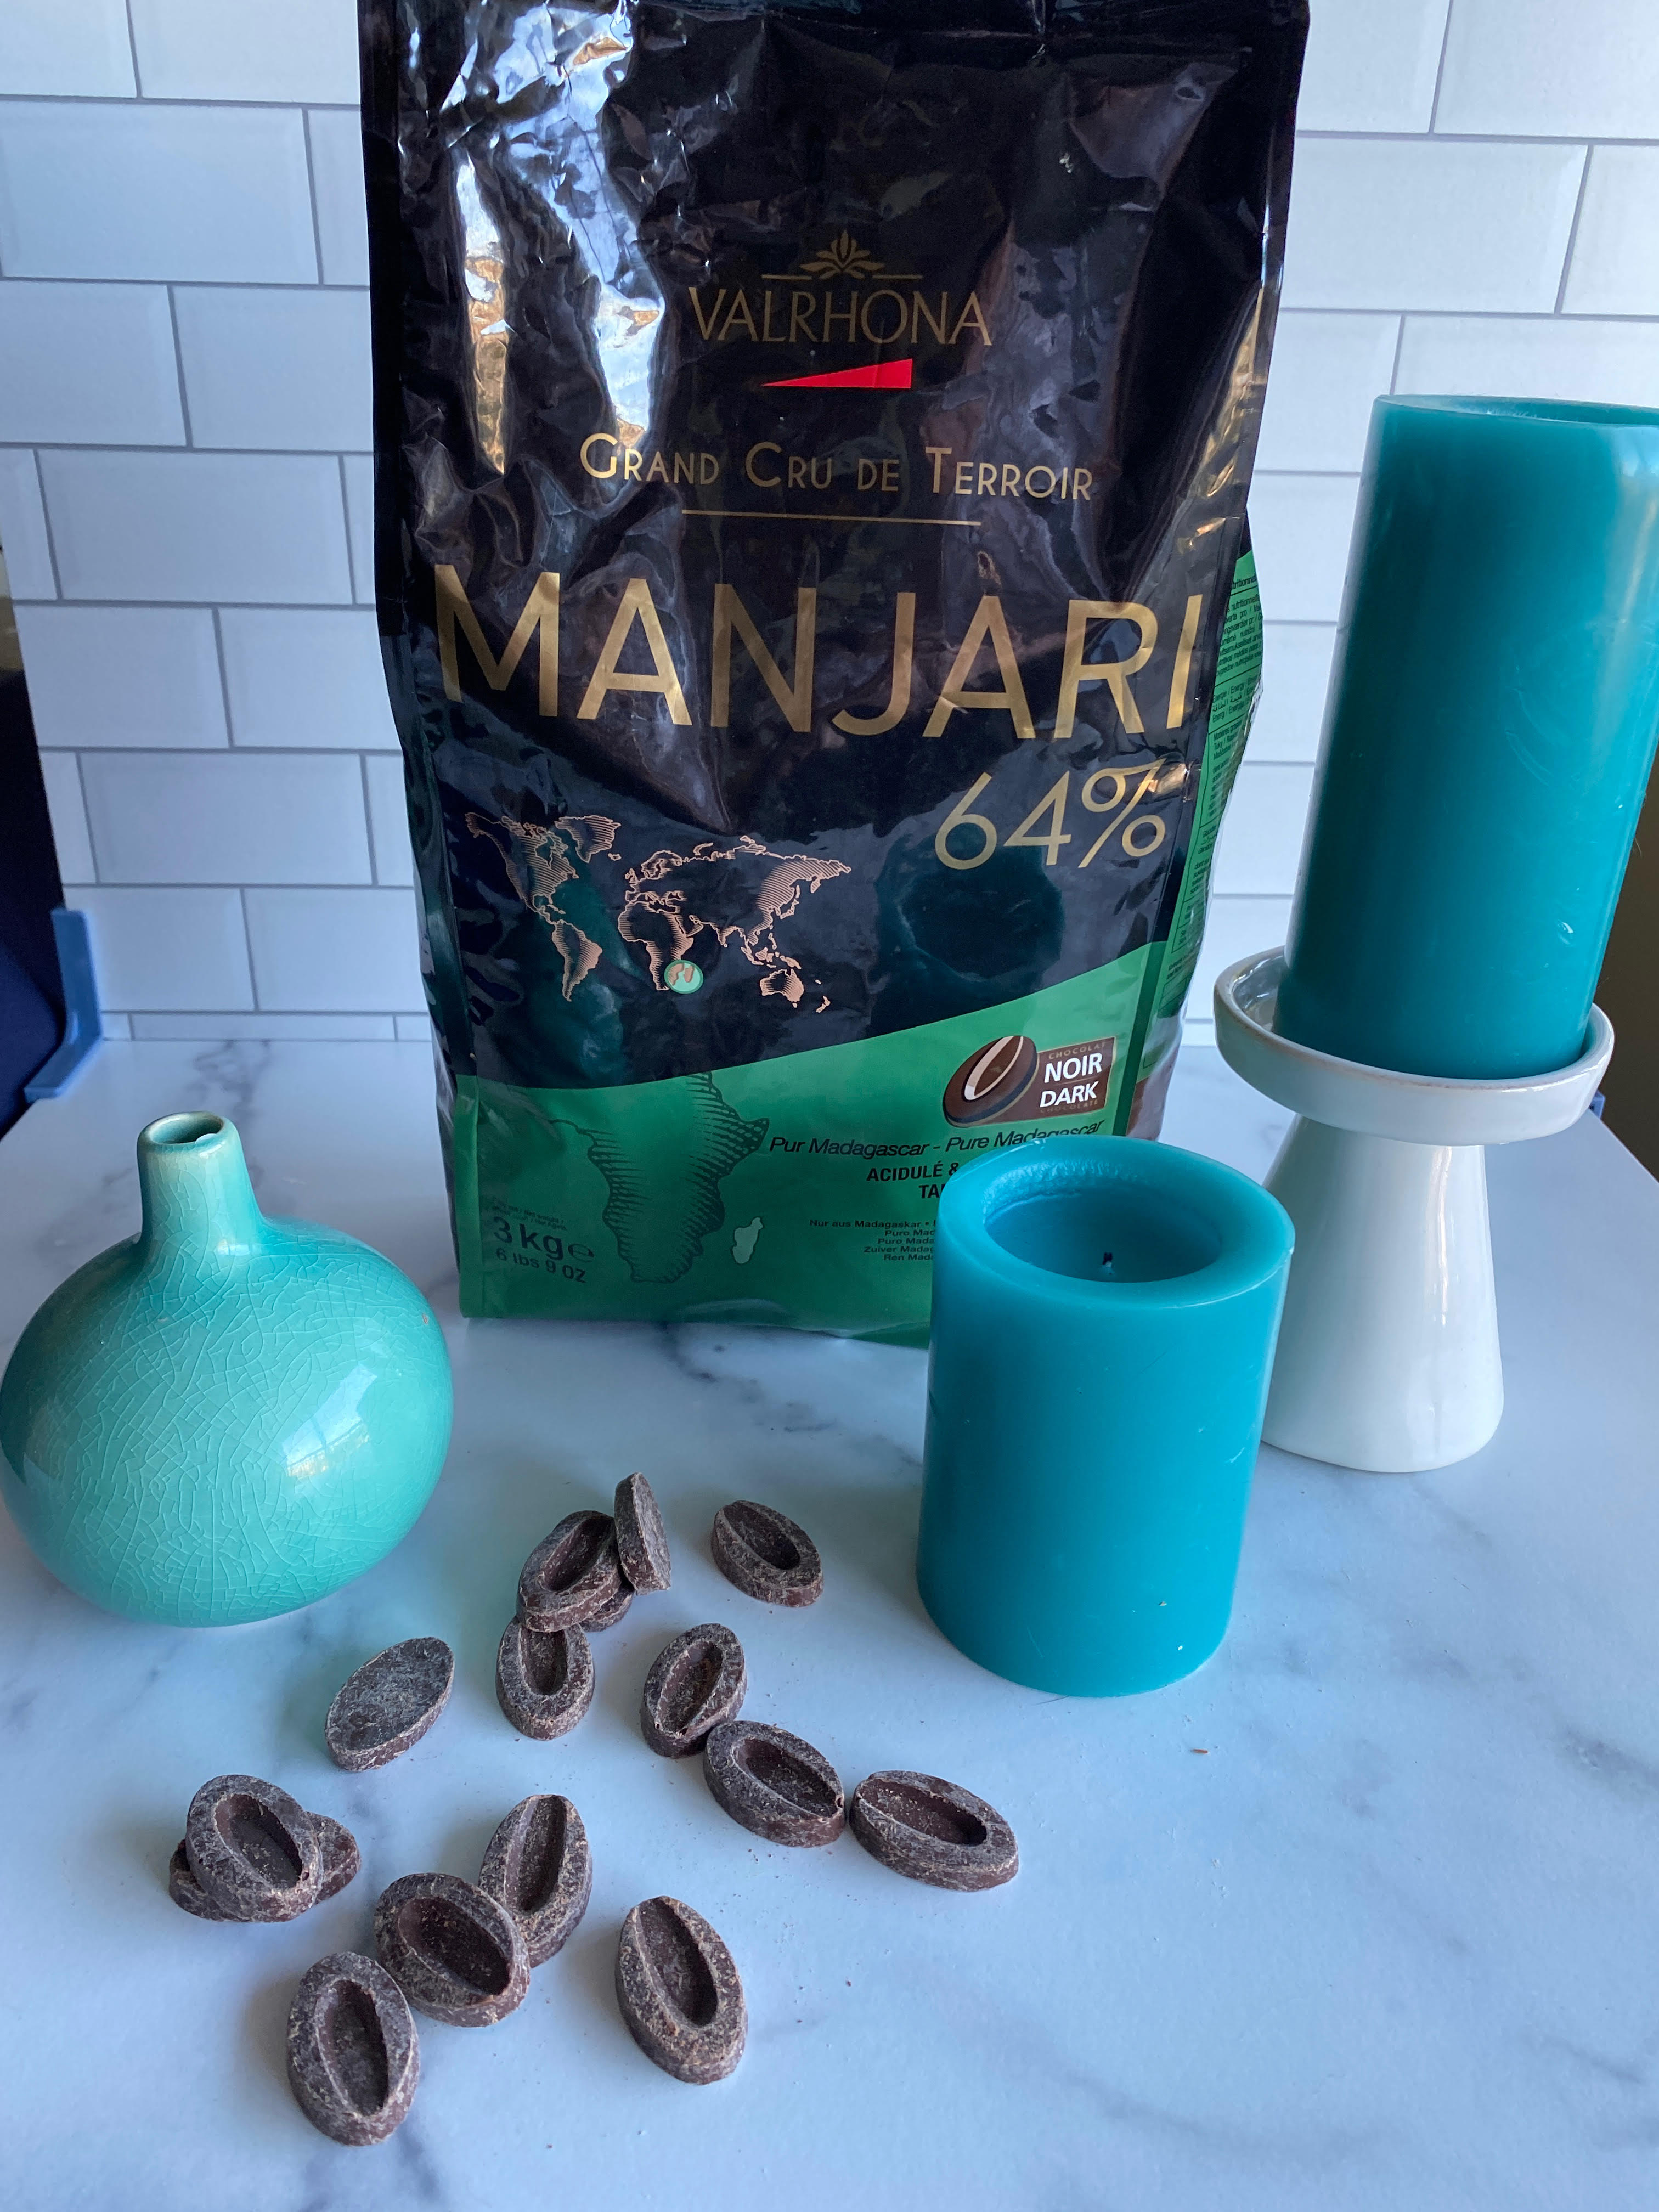 Valrhona Manjari 64% Dark Couverture Chocolate Feves